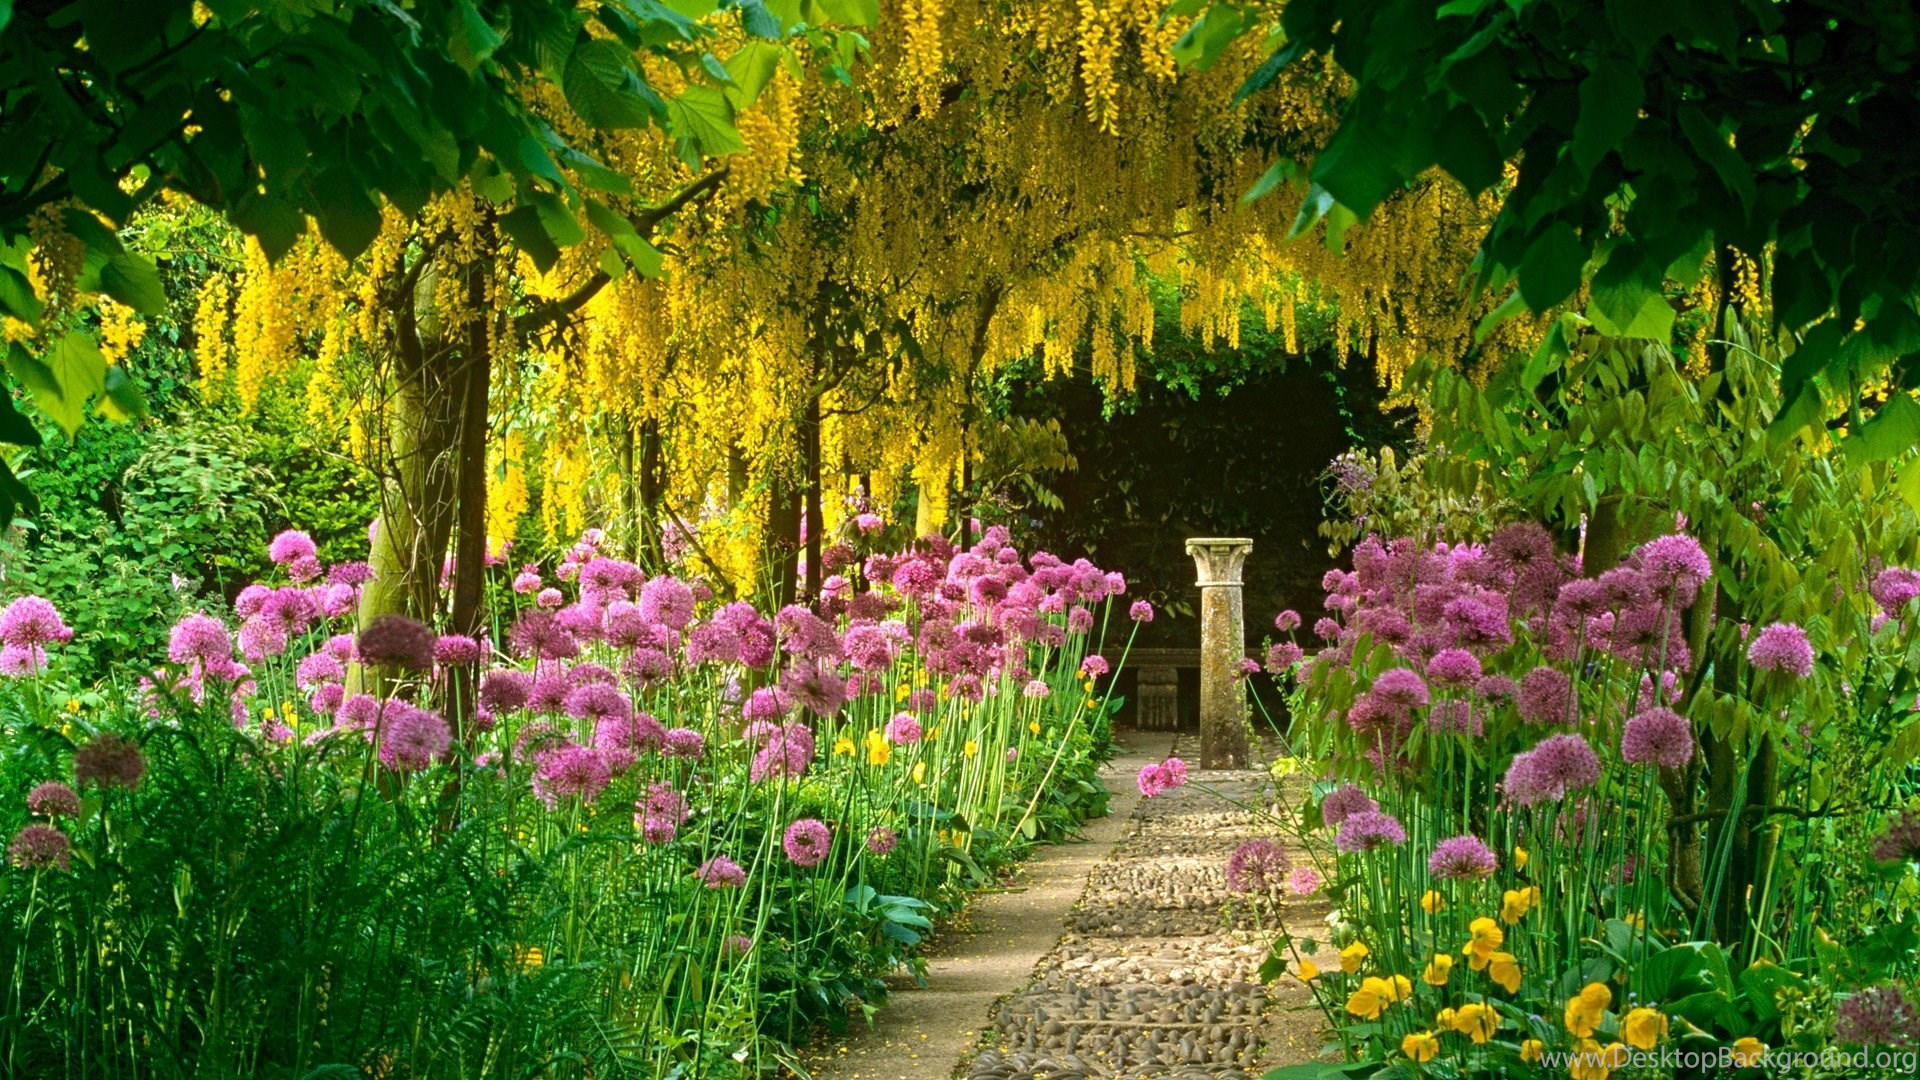 French Garden Wallpapers Desktop Background